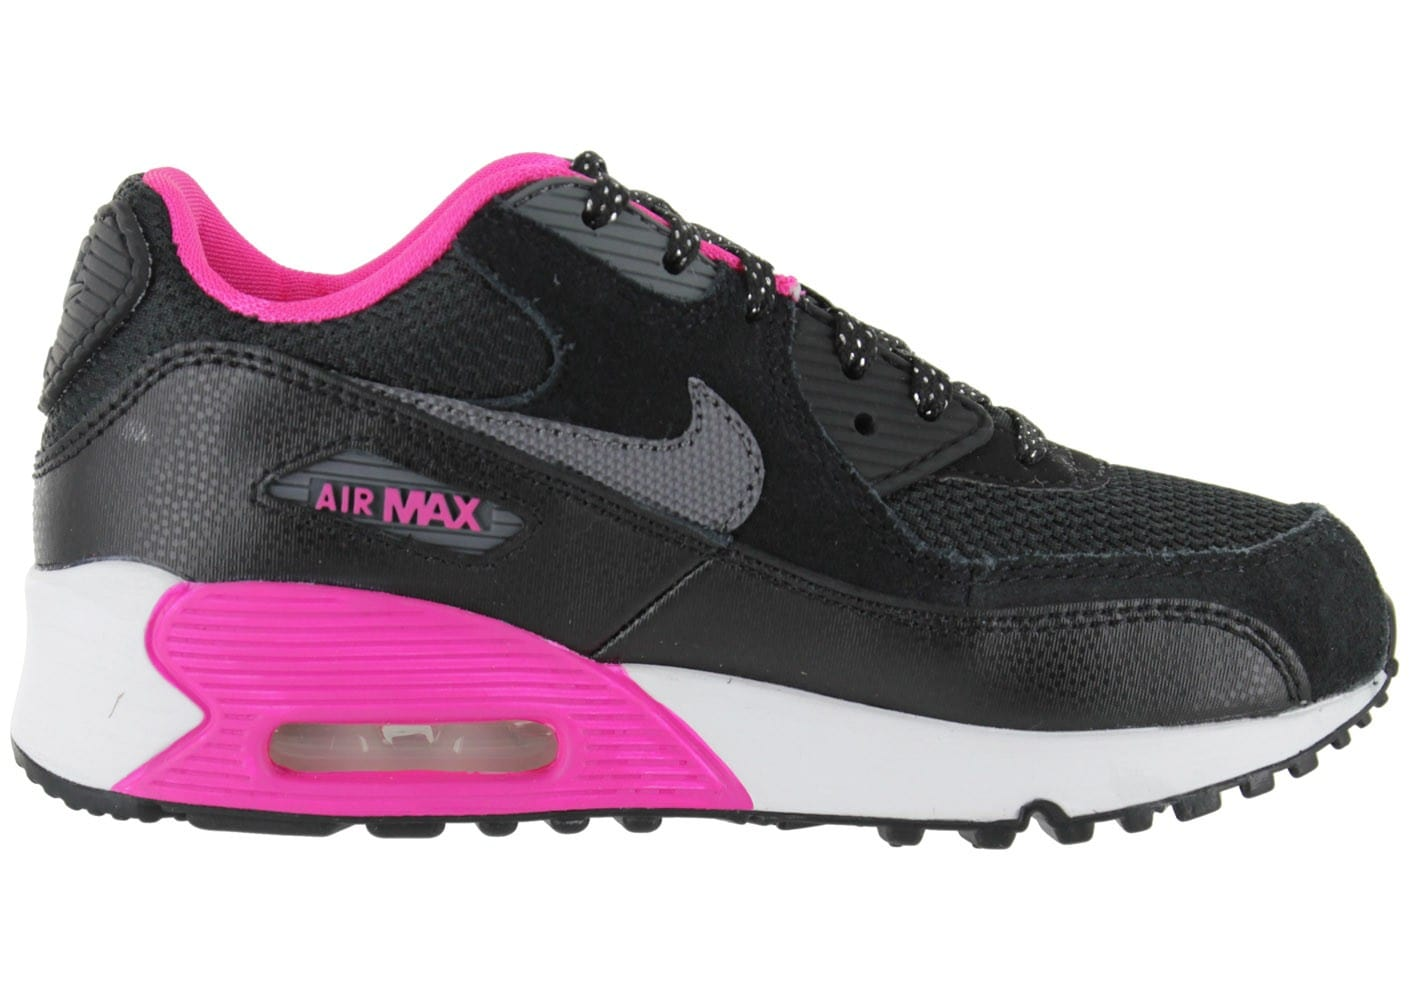 order online new high quality innovative design Nike Air Max 90 Enfant Noire - Chaussures Chaussures - Chausport